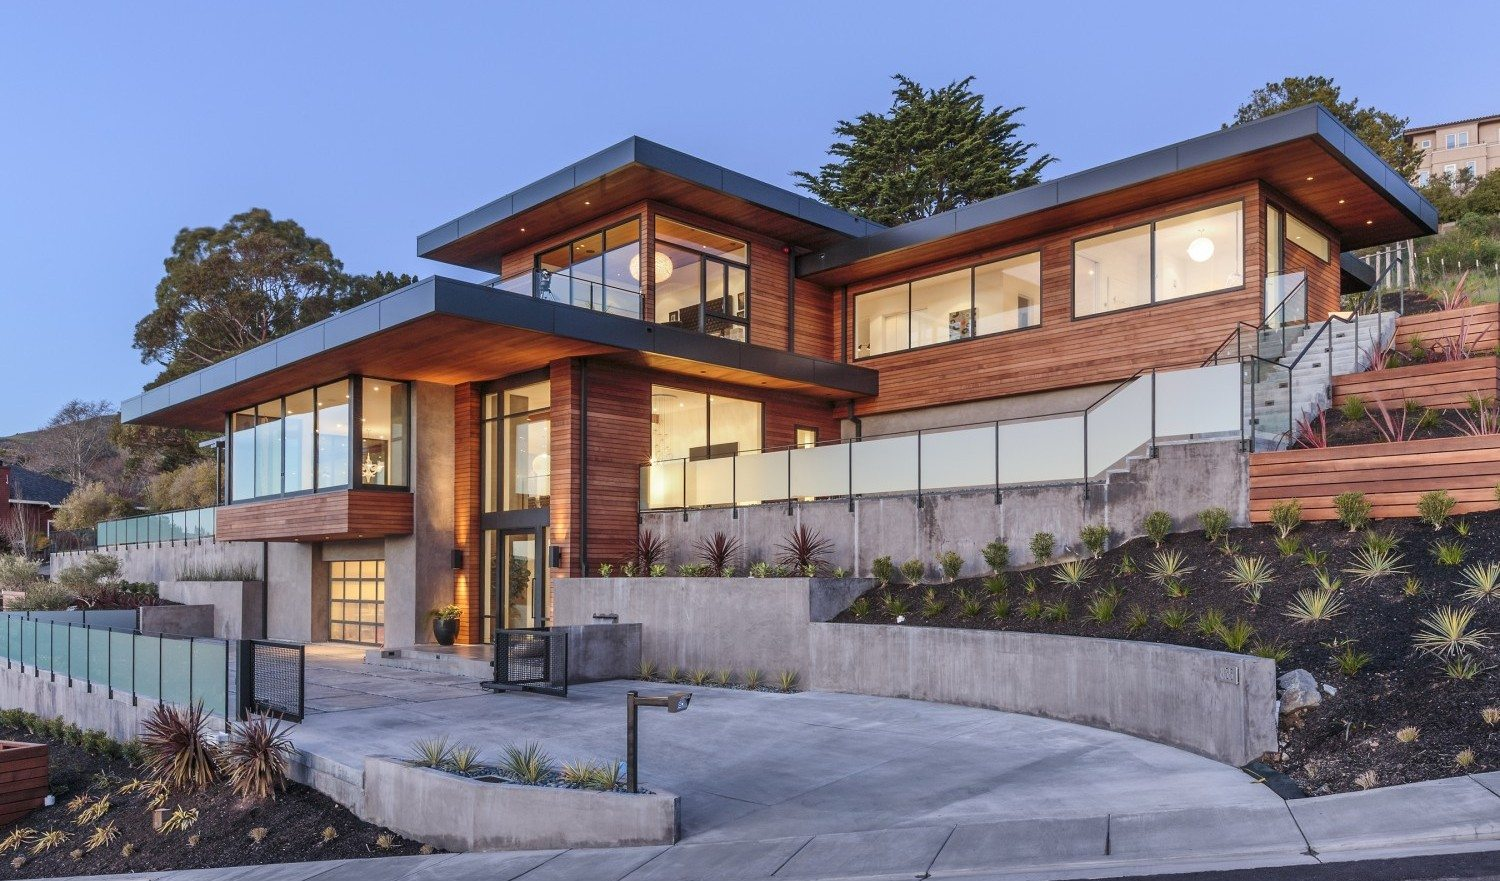 Extraordinary Home of the Week: New Modern Smart Home in Tiburon